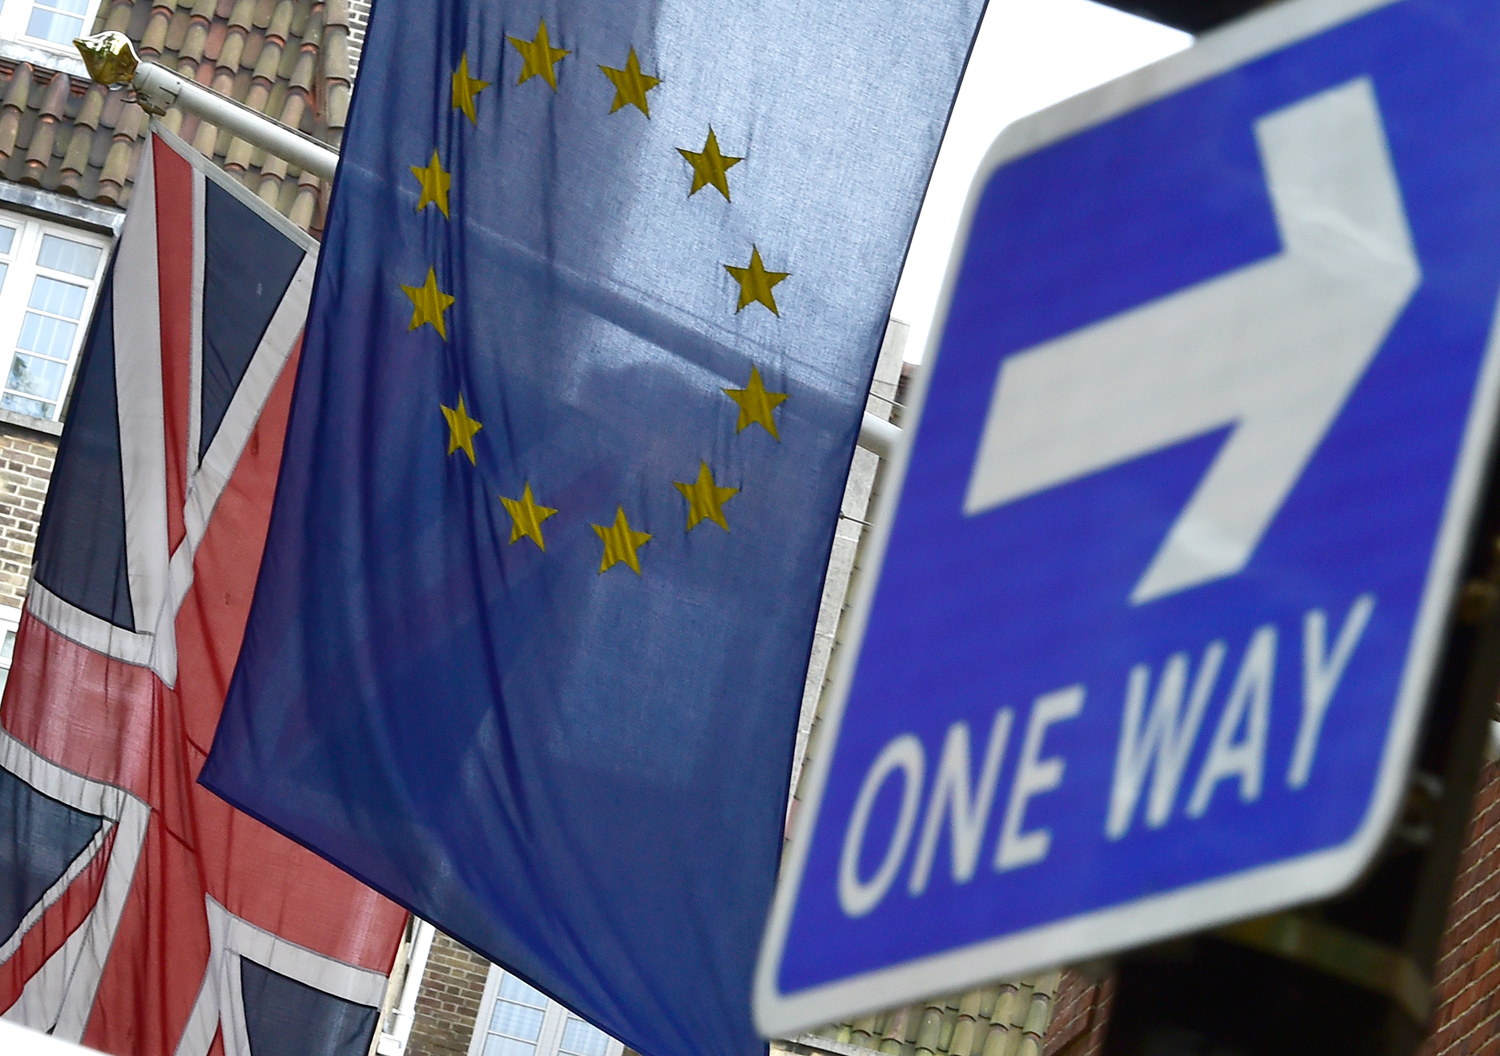 The British Union flag and European Union flag are seen hanging outside Europe House in central London on June 9, 2015.